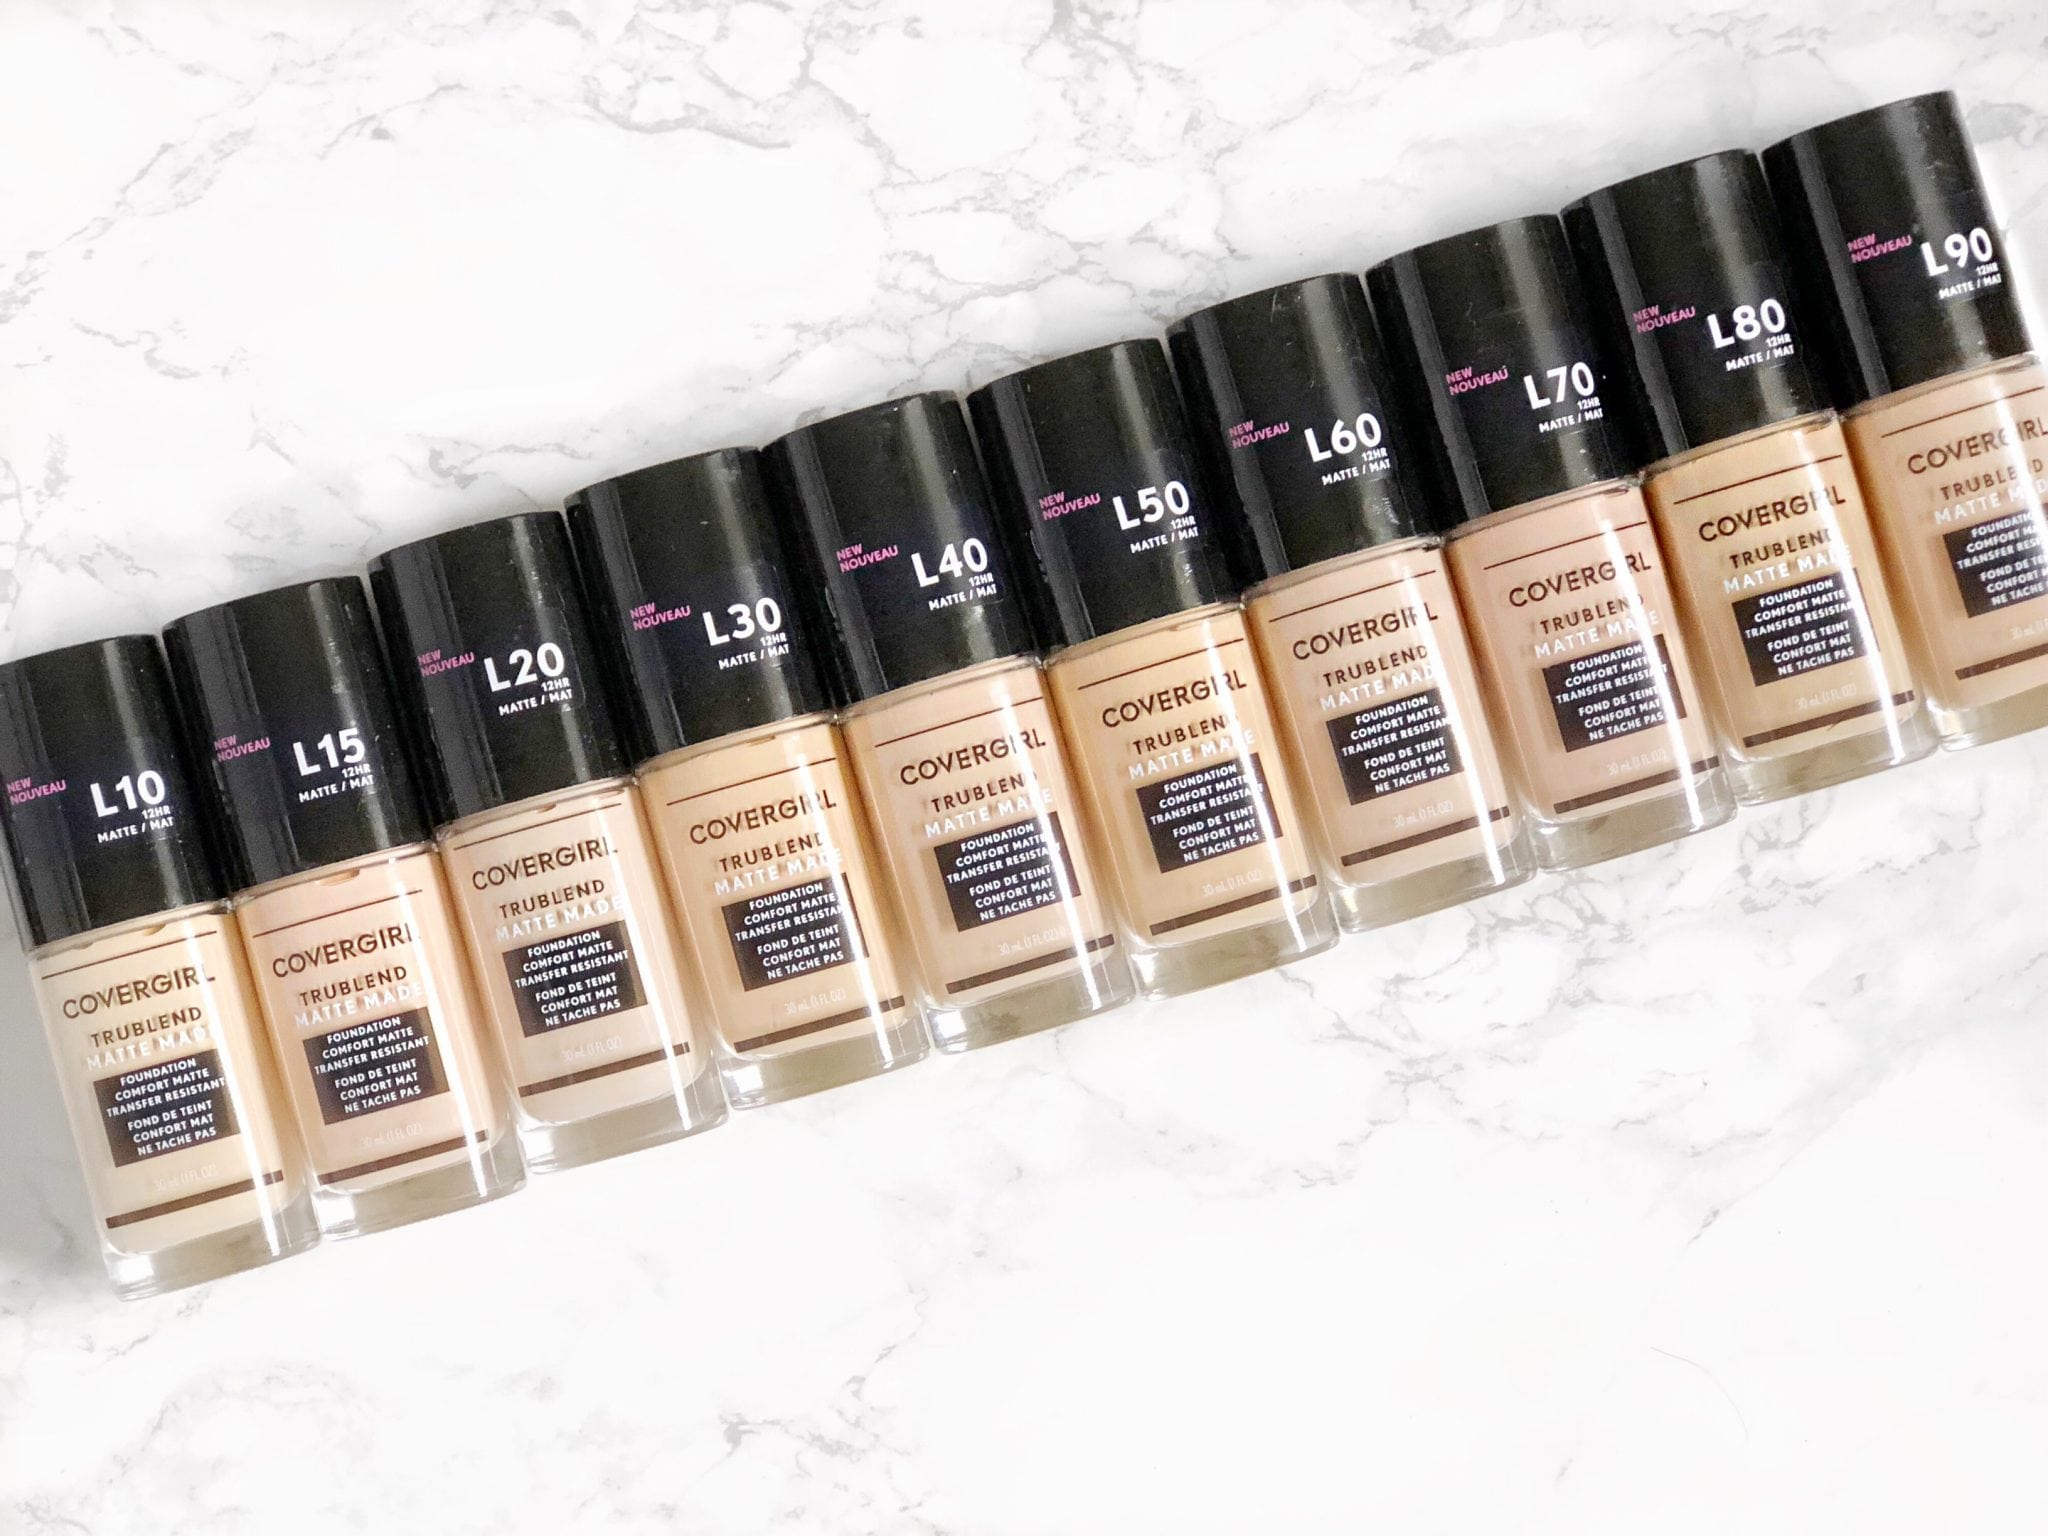 COVERGIRL TruBlend Matte Made Foundation - Jasmine Maria